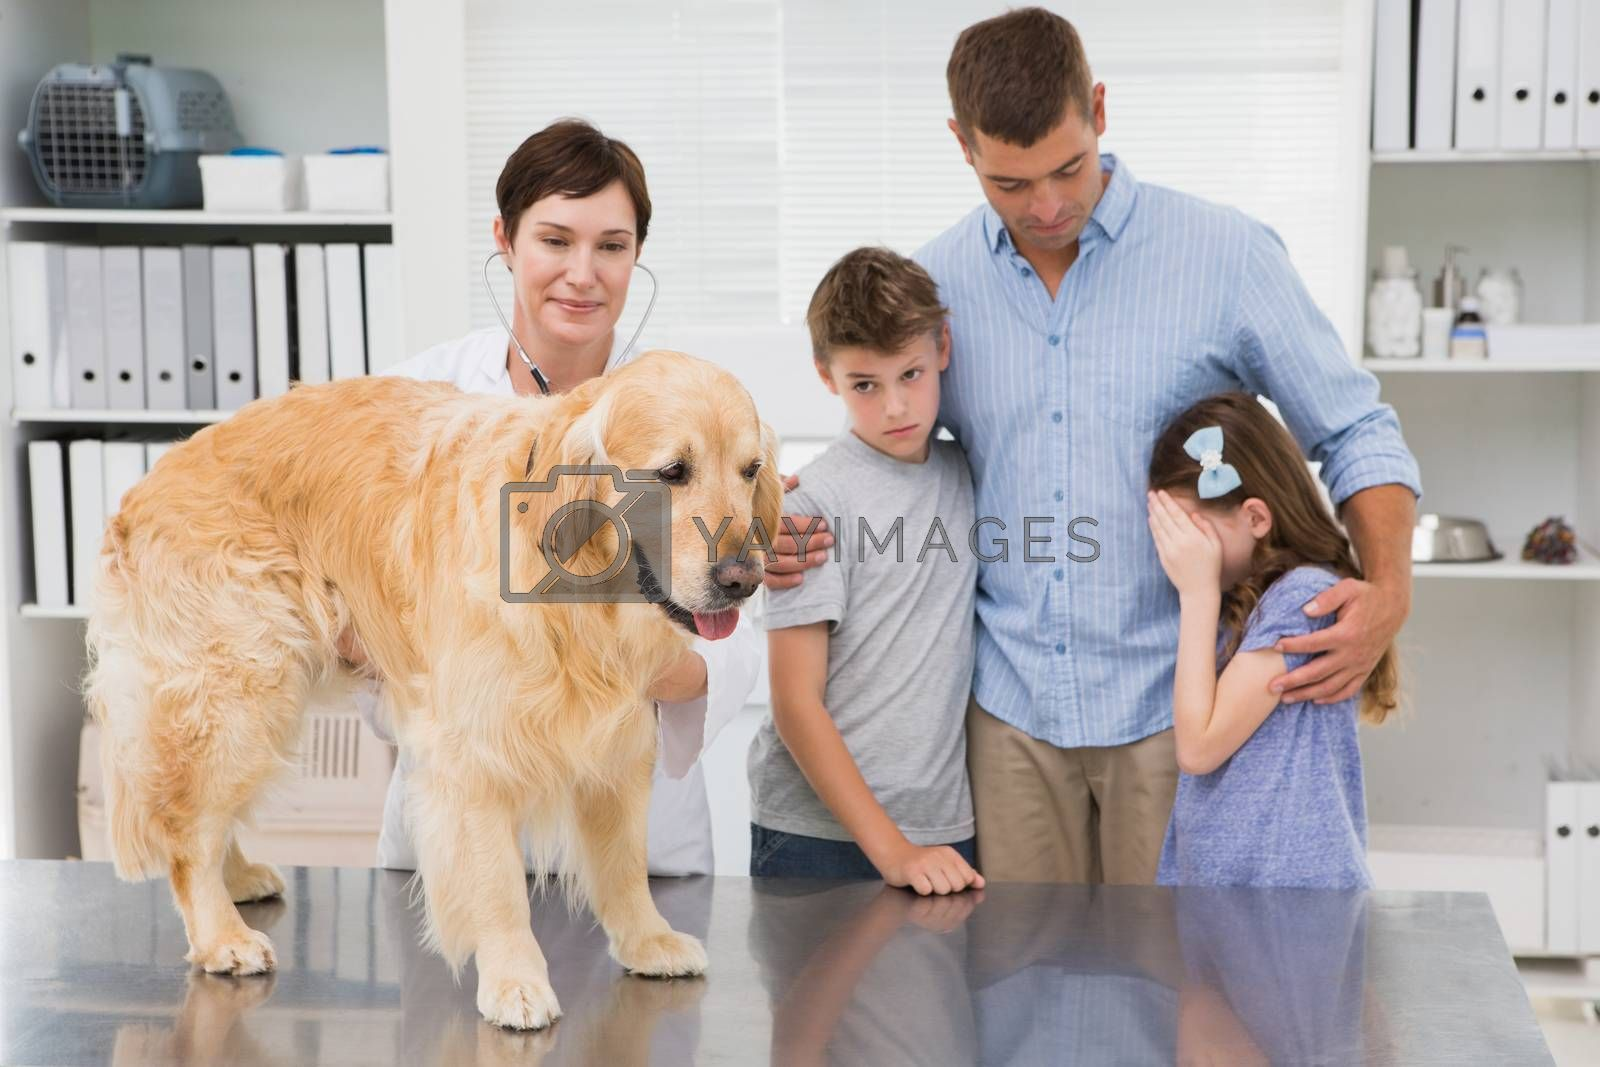 Smiling vet examining a dog with its scared owners in medical office